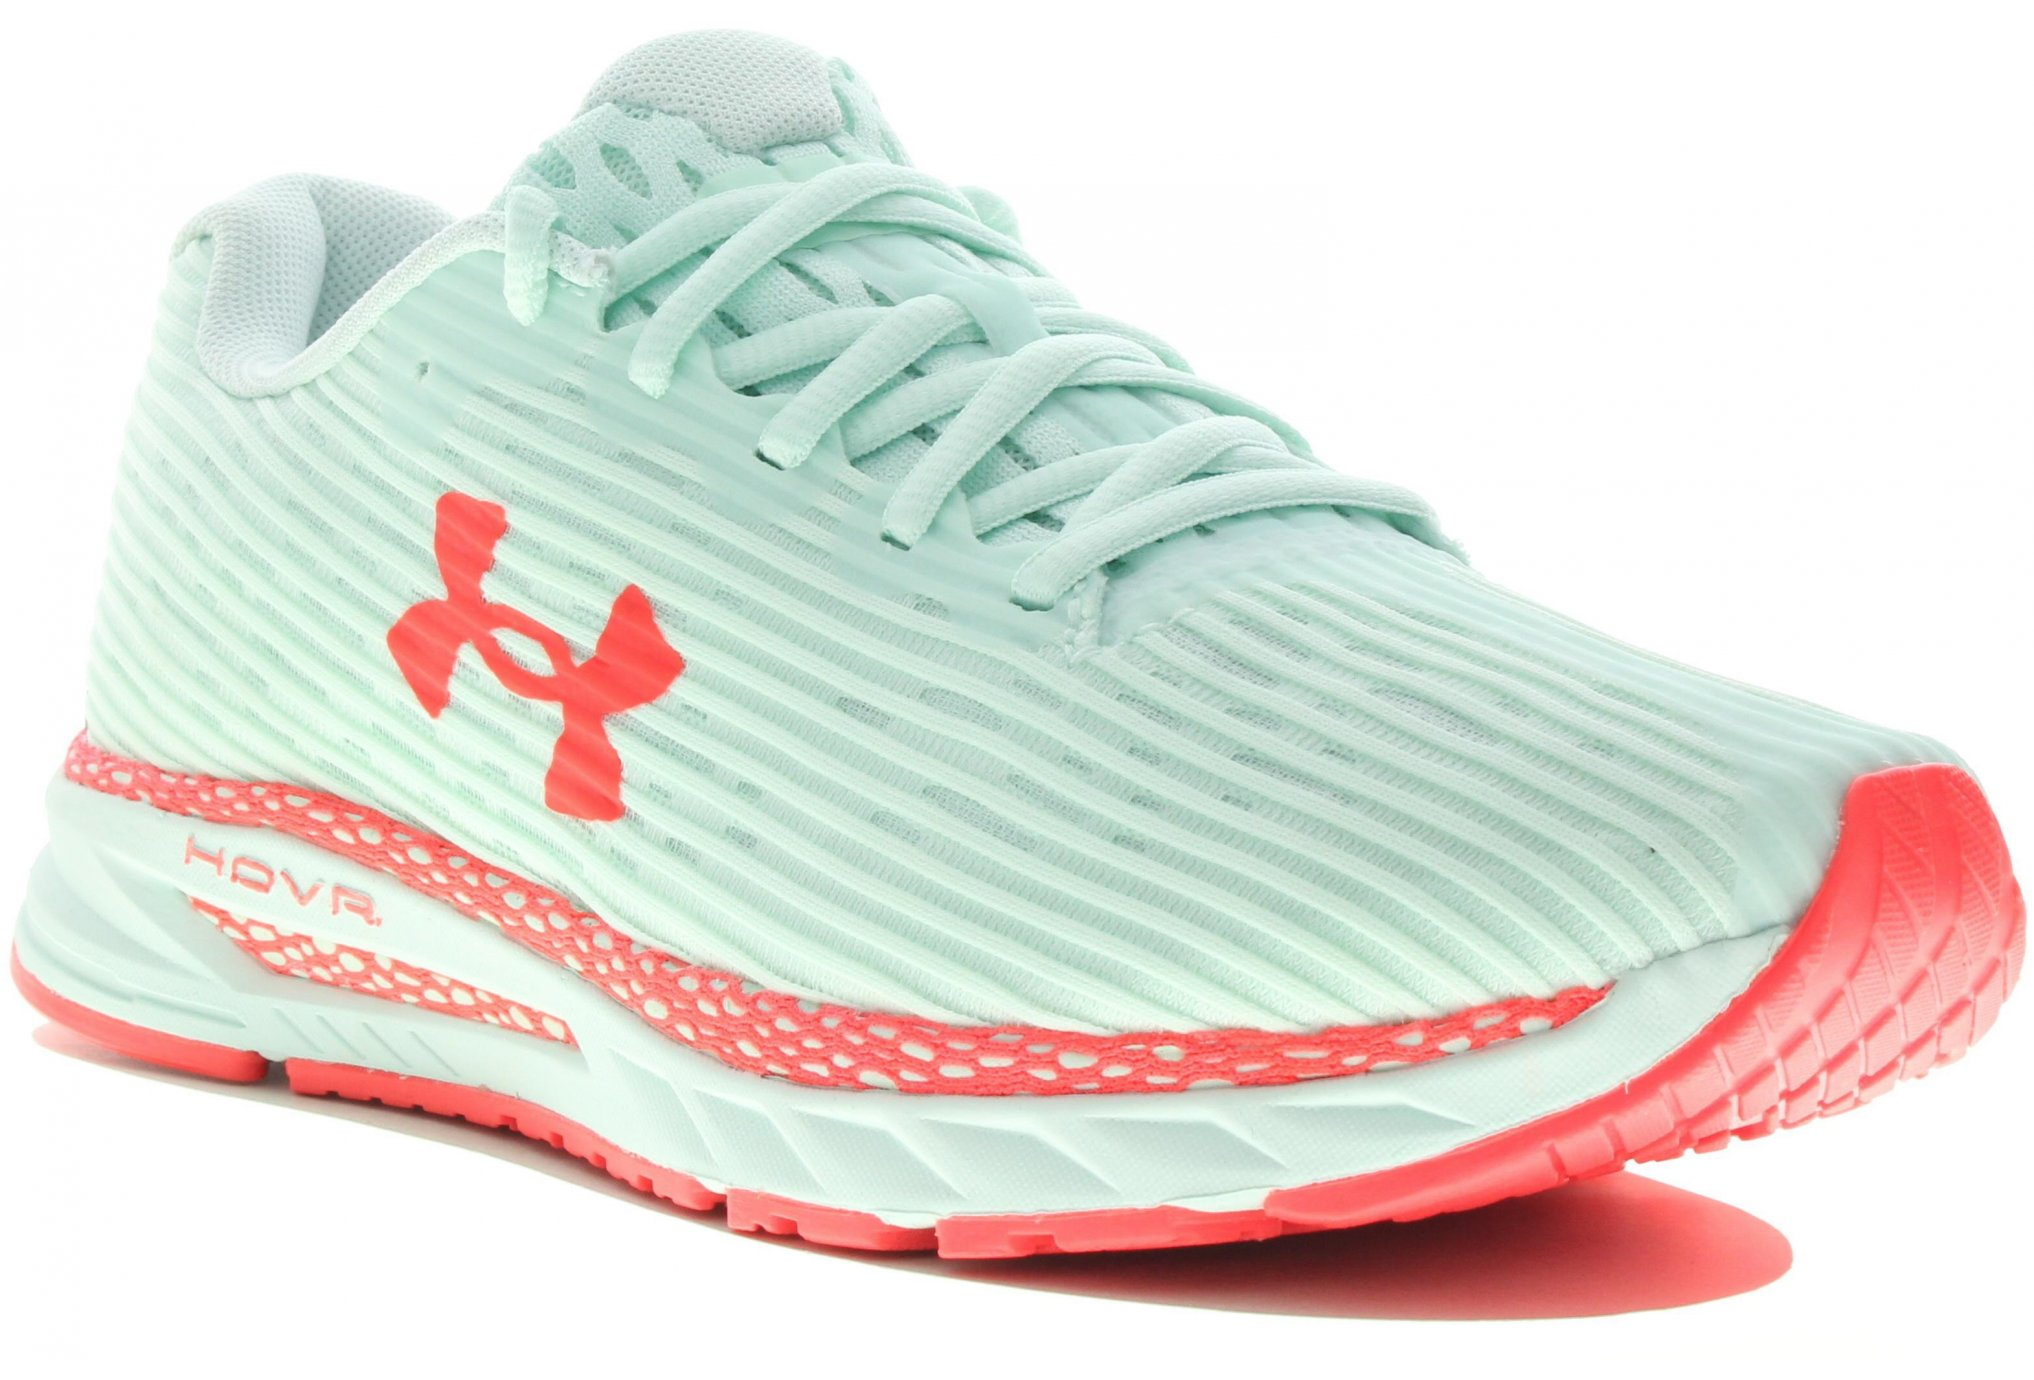 Under Armour HOVR Velociti 3 Chaussures running femme